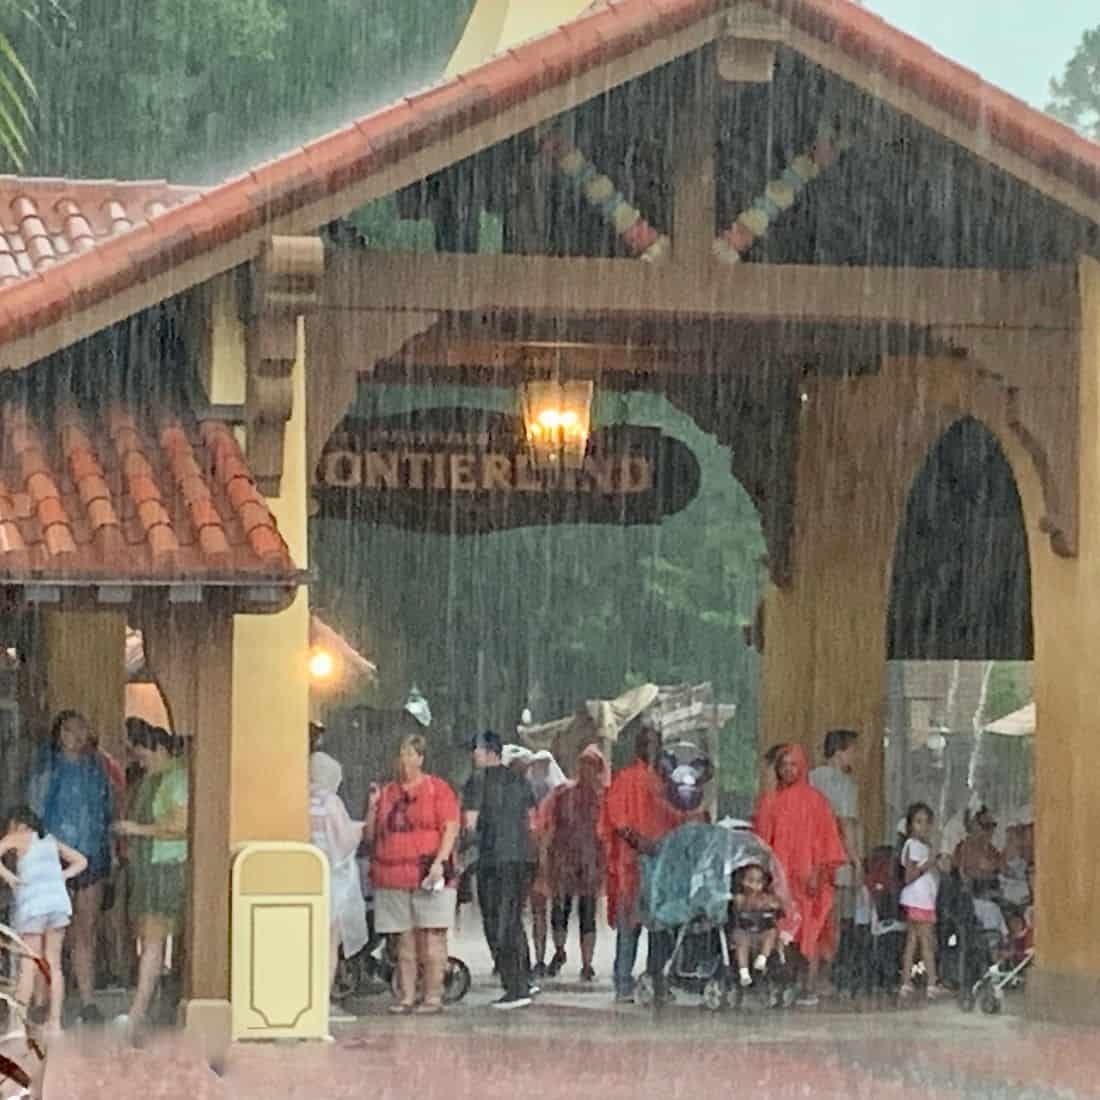 Rain at Disney World? Take Cover with These 7 Things to Do